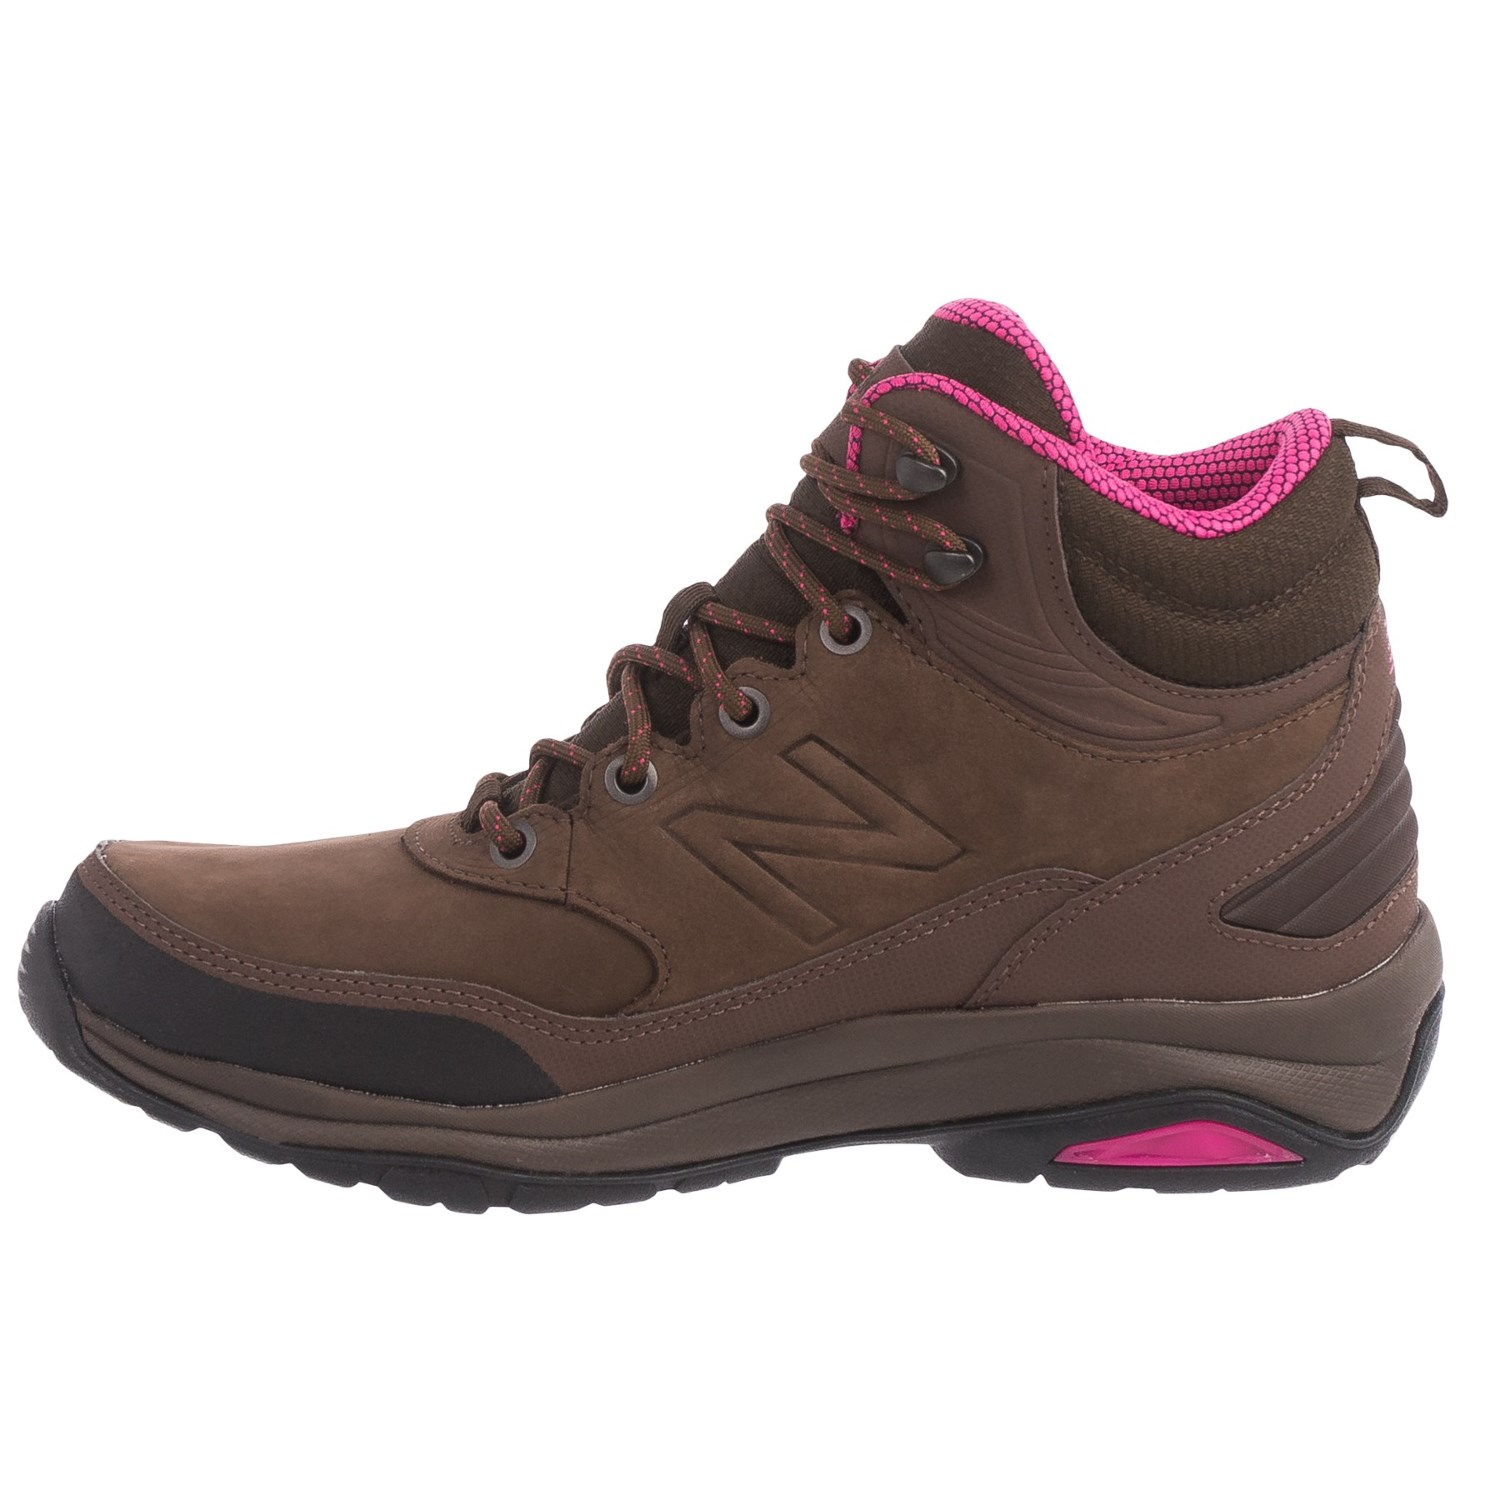 Lastest NIKE MENS AIR MAX 1 PREMIUM RUNNING SHOES NEW Size 11 Pink John Deere Chocolate Rag Quilt Bag Tote Diaper New Dark Brown Ponytail Extension Hair Piece Hairpiece Wig White Sexy Feminine Crusie Tiered Dress 4X 26 28